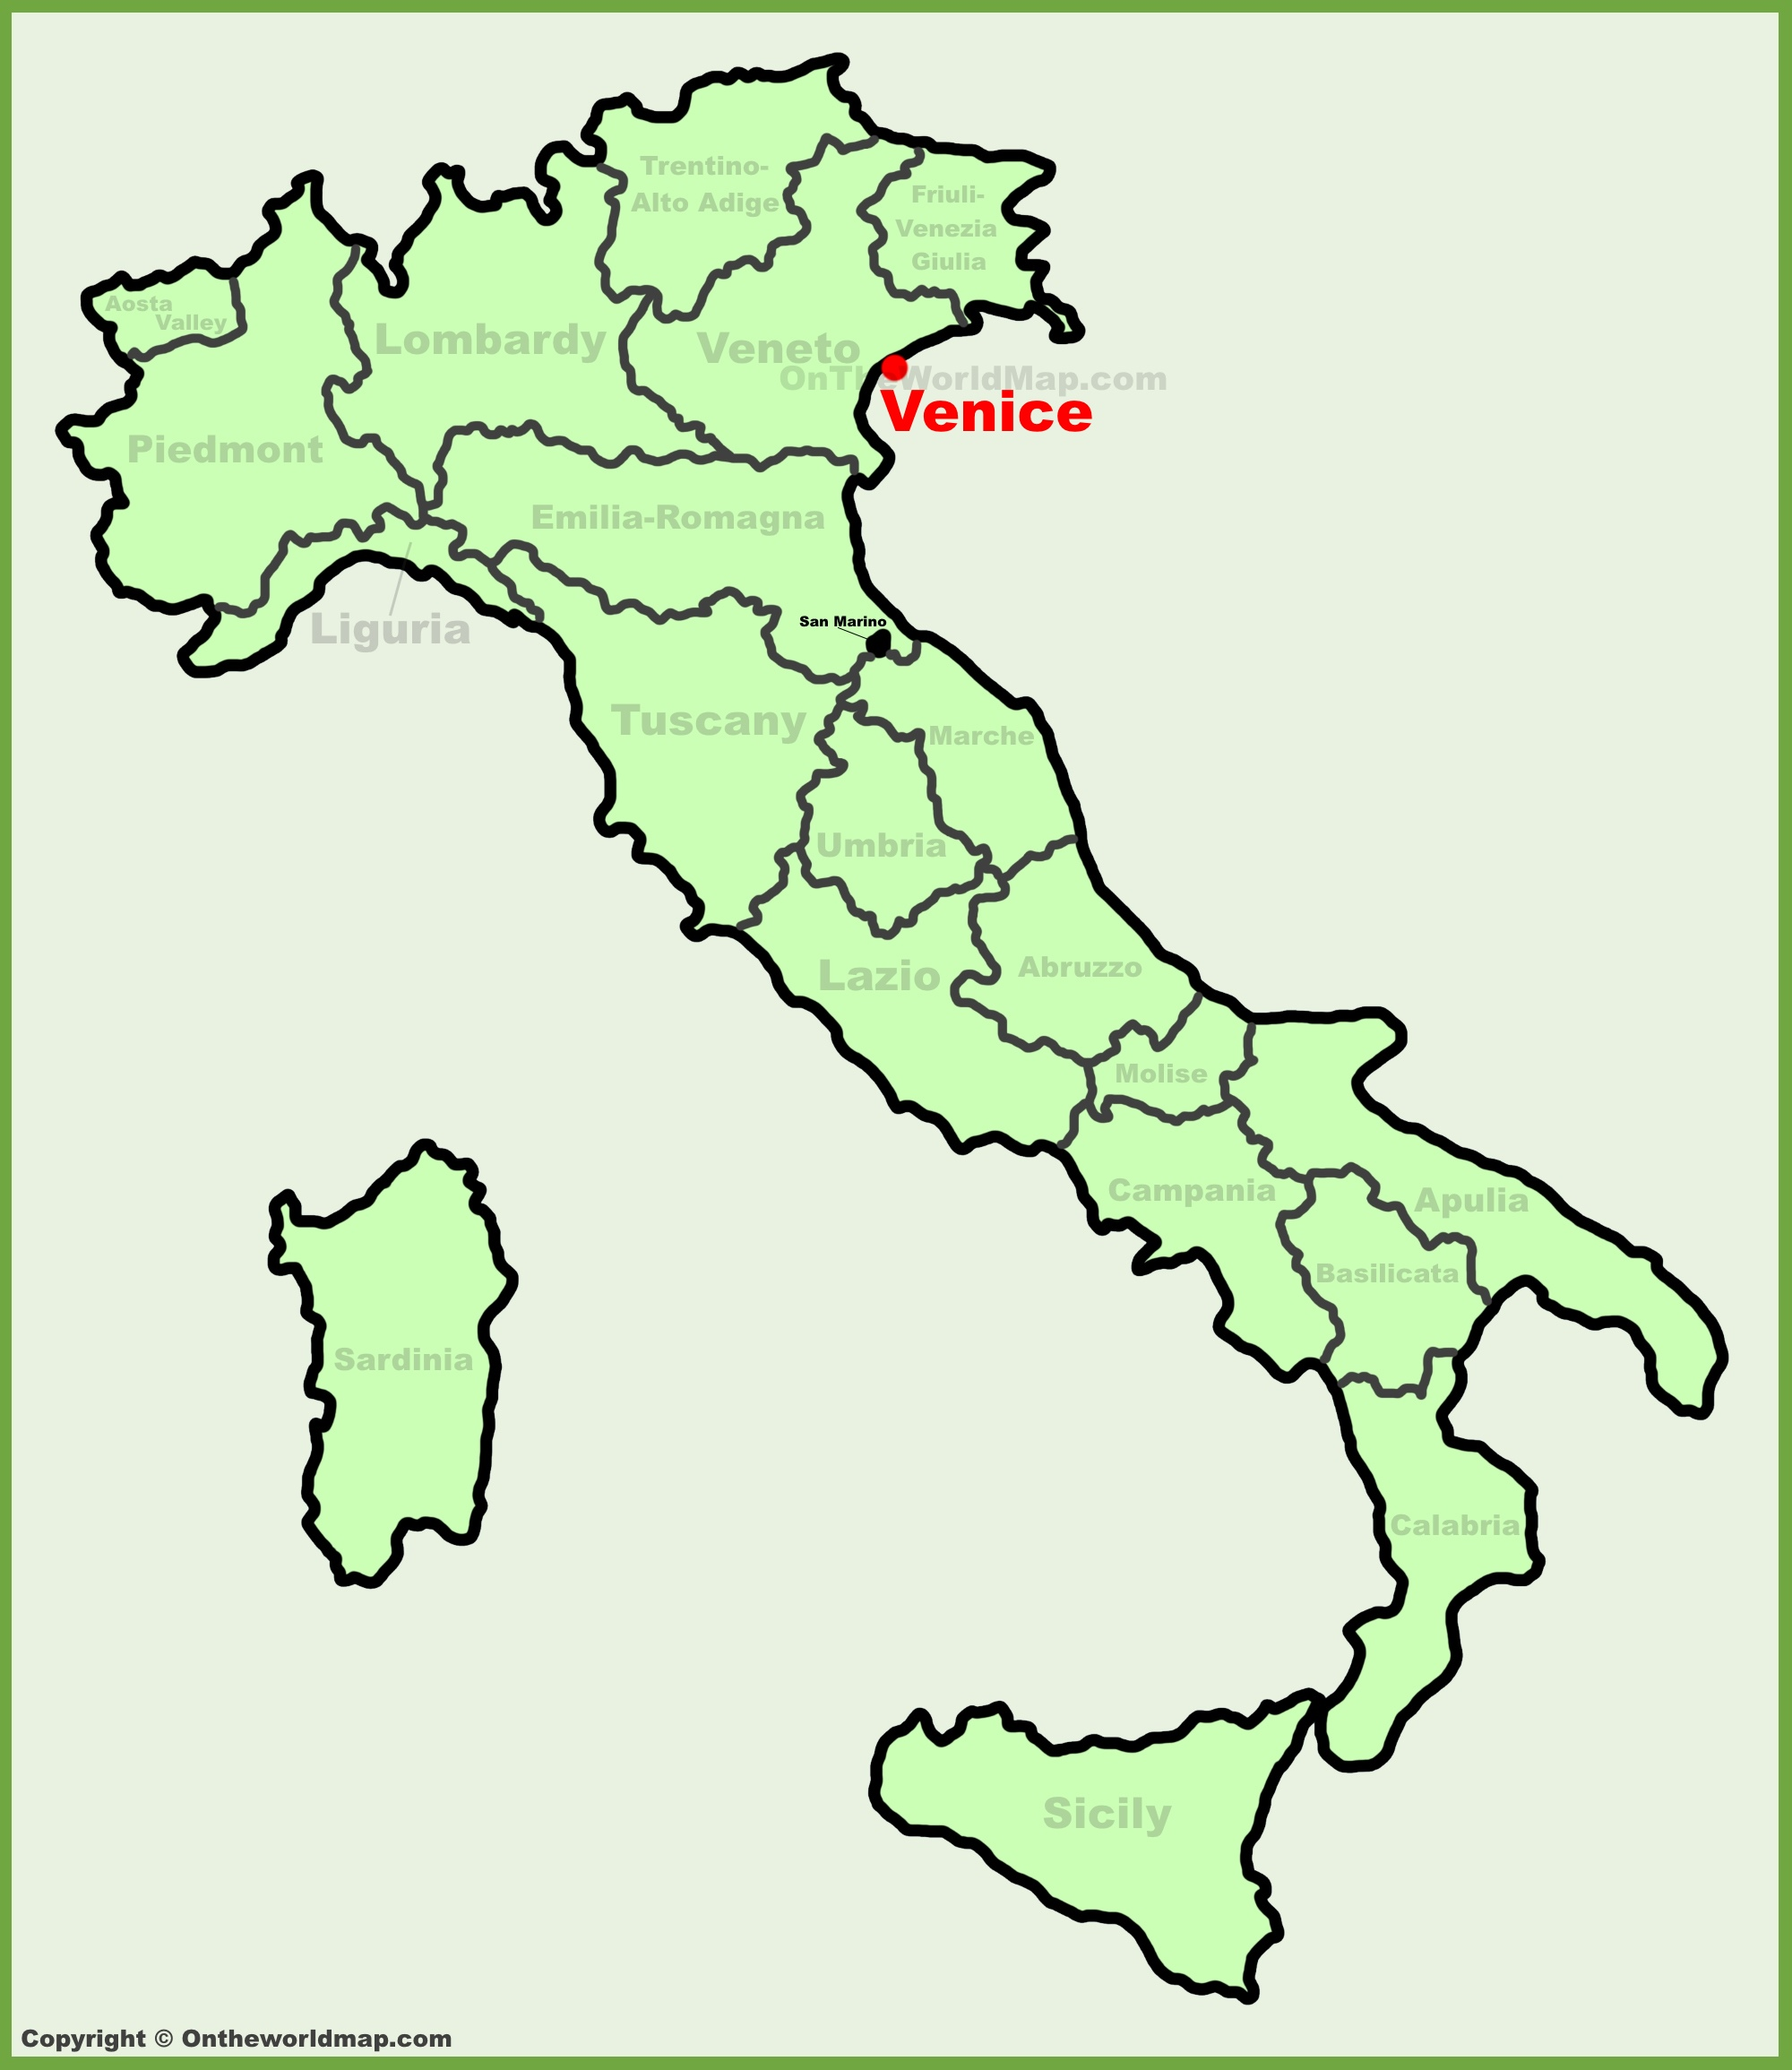 Map Of Venice Italy Venice location on the Italy map Map Of Venice Italy